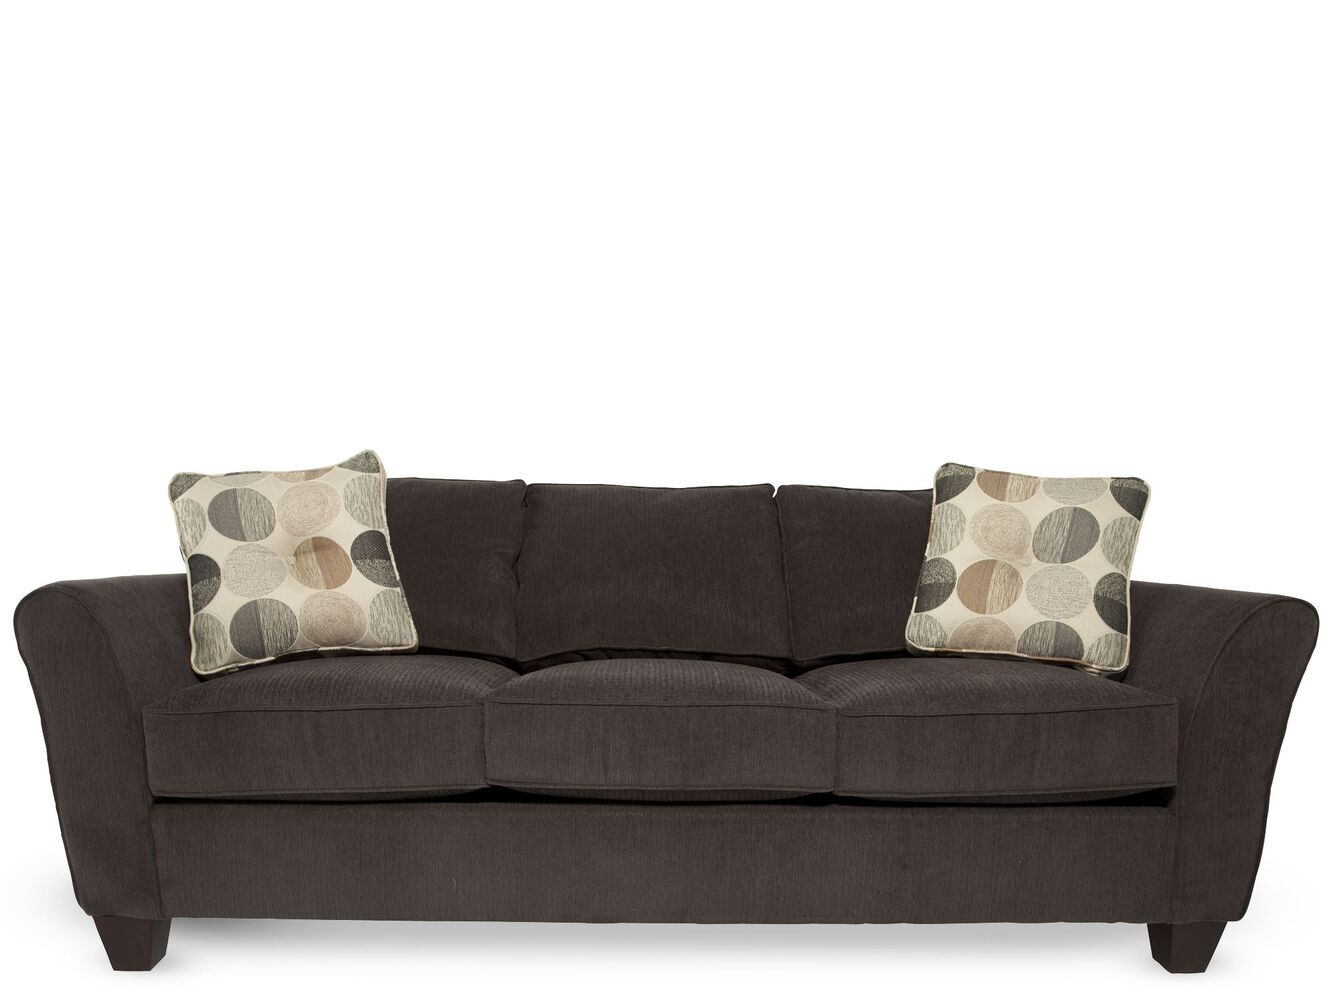 Microfiber Corduroy 87 Sofa In Charcoal Mathis Brothers Furniture